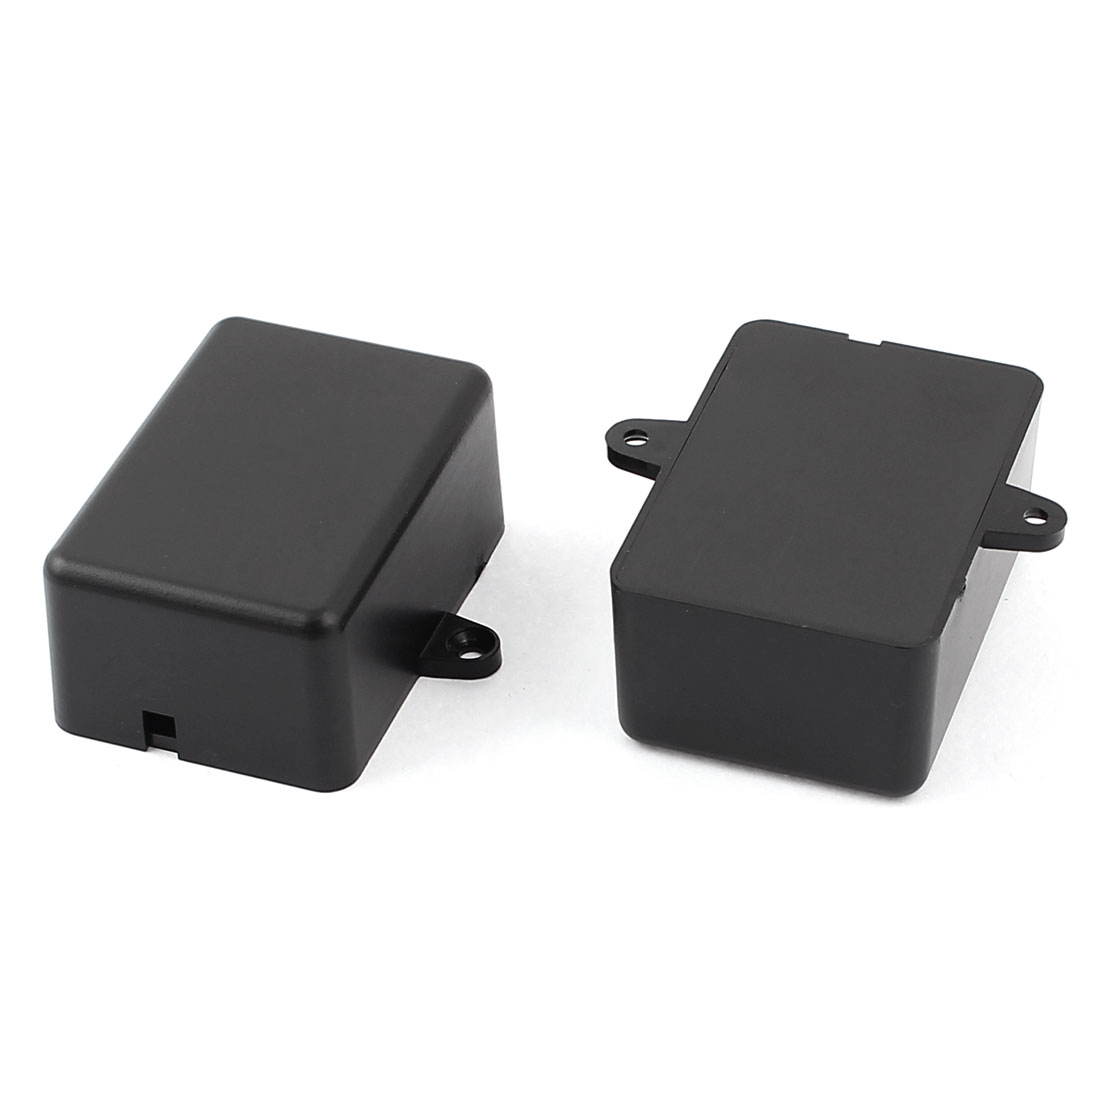 2pcs Plastic Electronic Project Case Junction Box 50 x 35 x 23mm Black